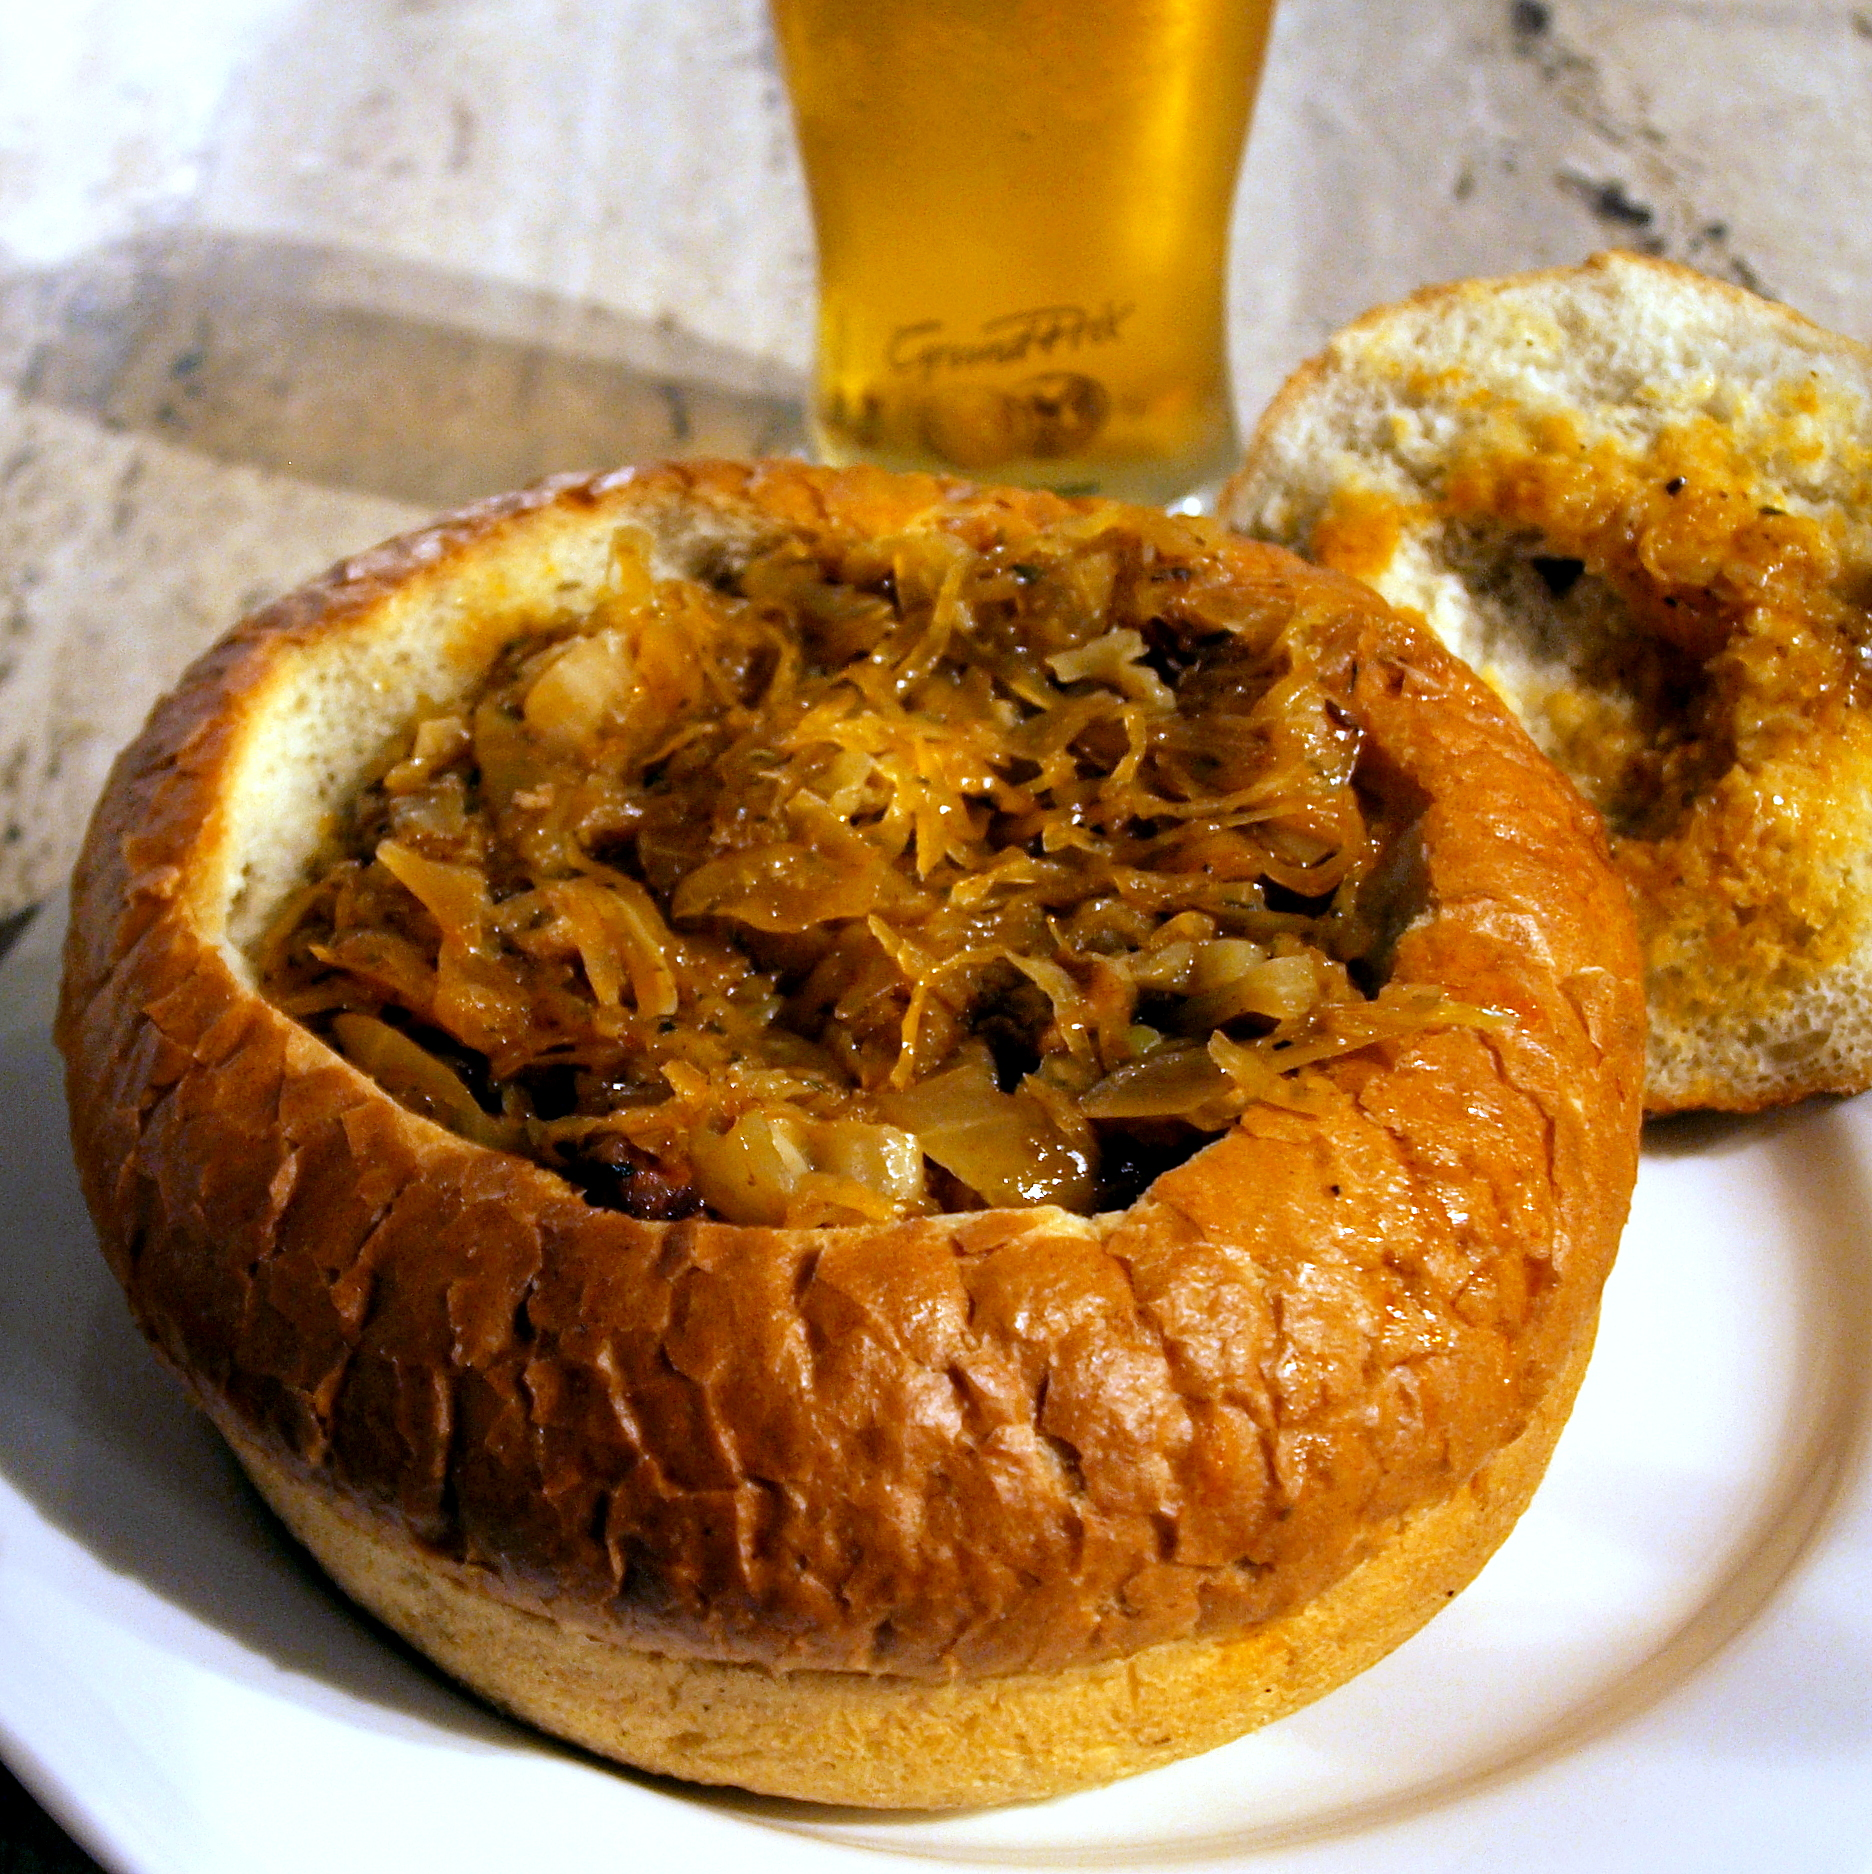 File:Bigos in Kraków.jpg - Wikimedia Commons